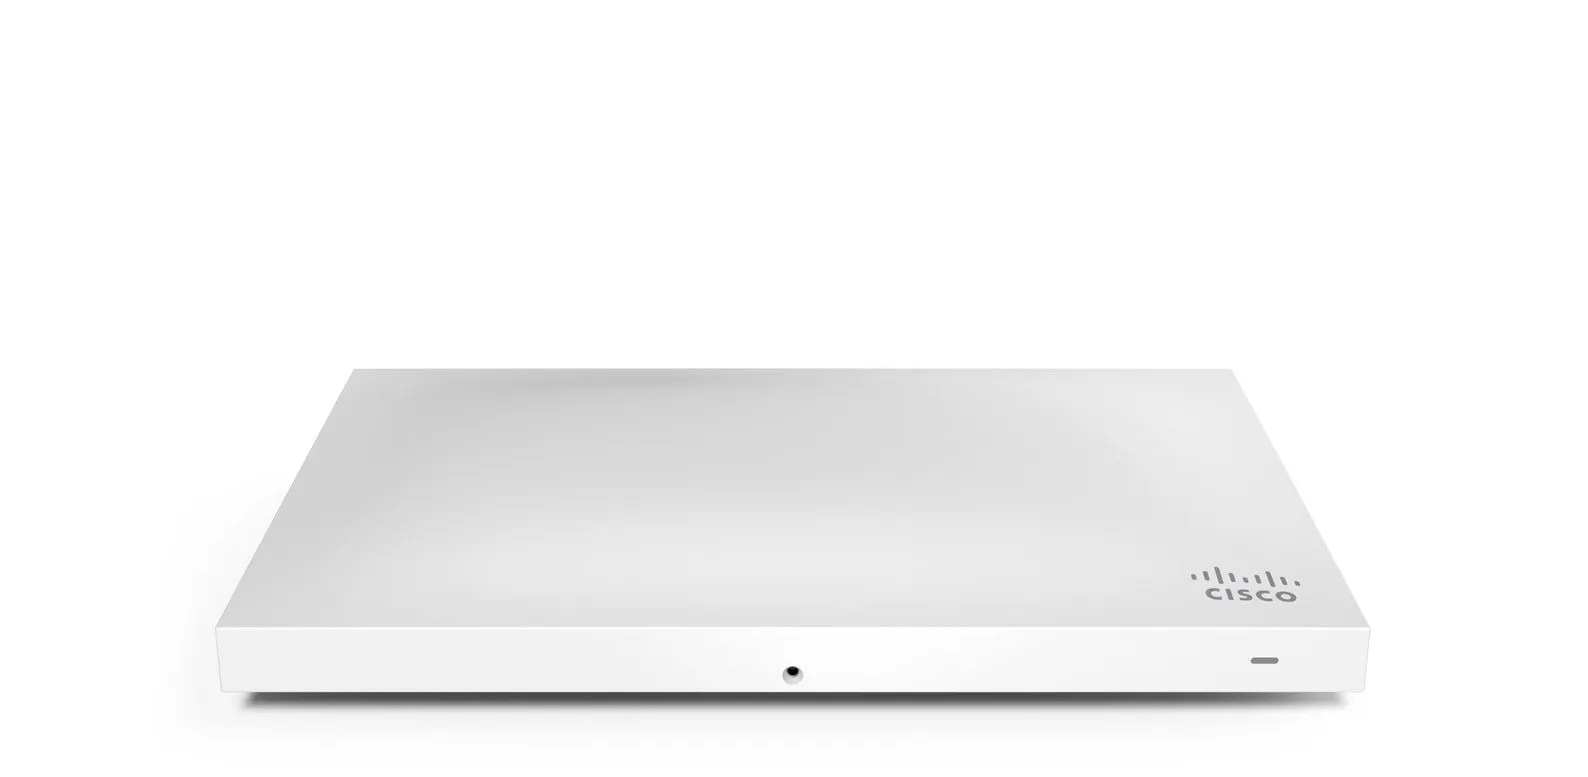 Cisco Meraki MR53 access point